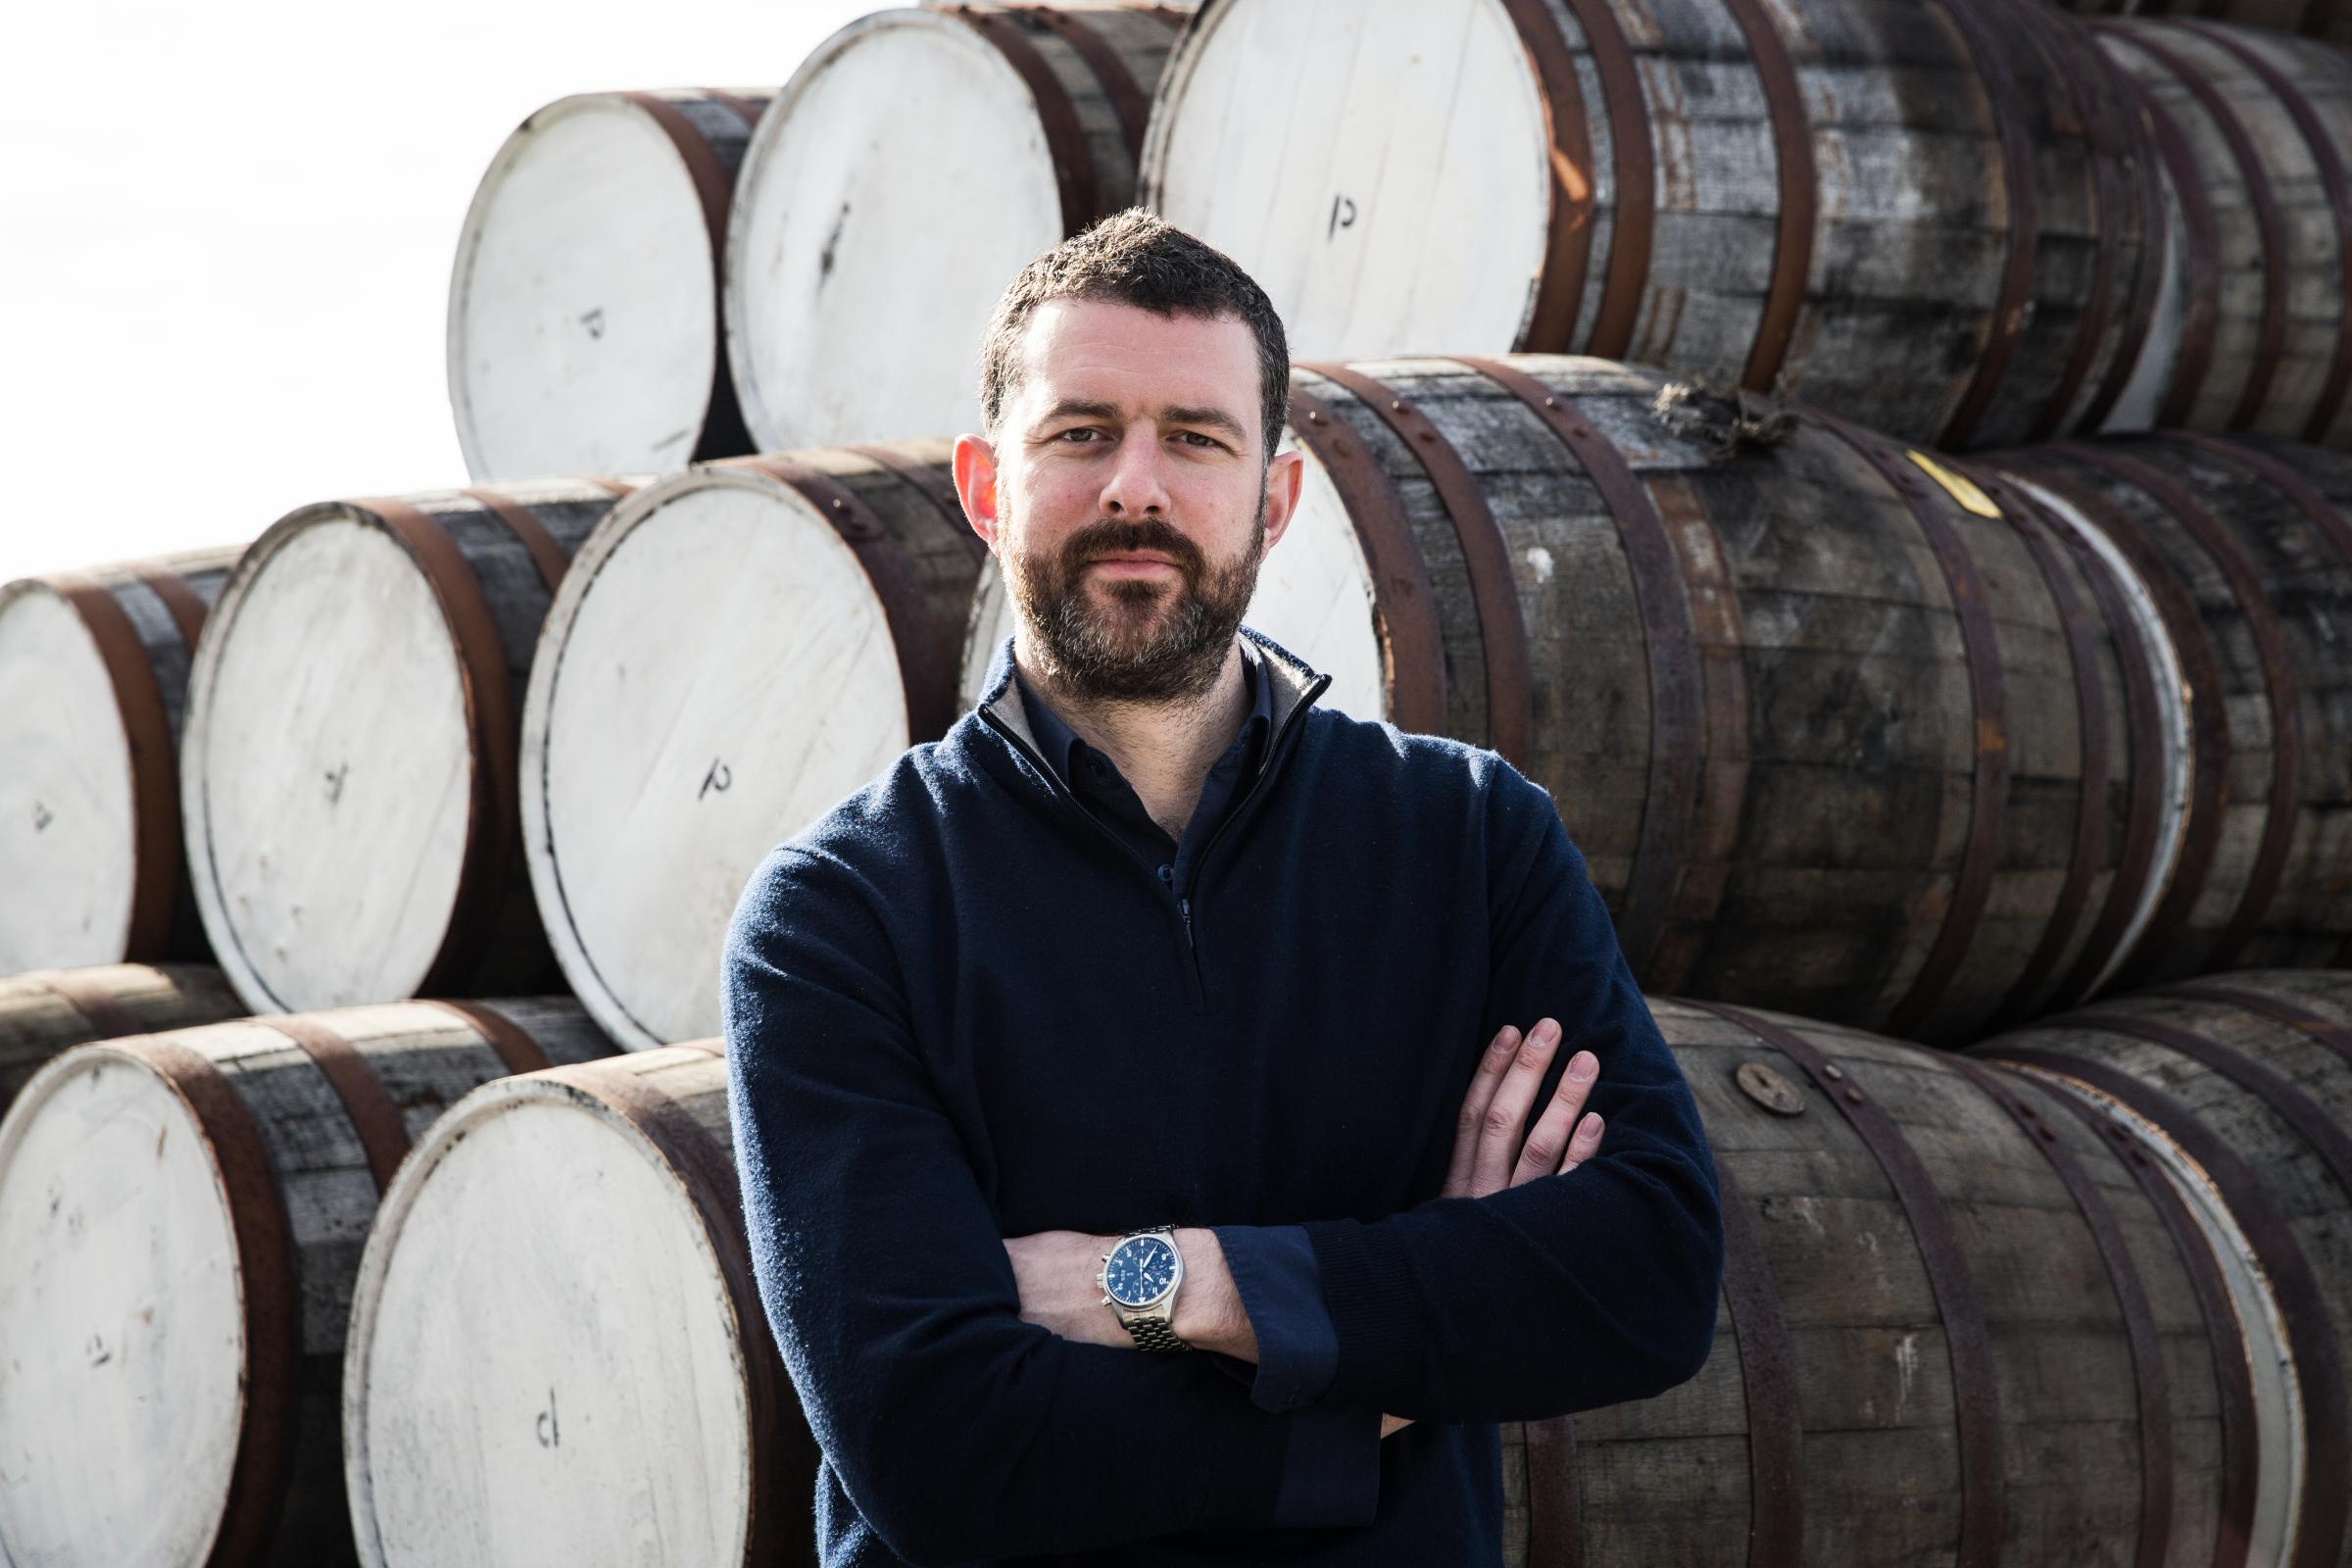 Douglas Taylor, chief executive, Bruichladdich Distillery